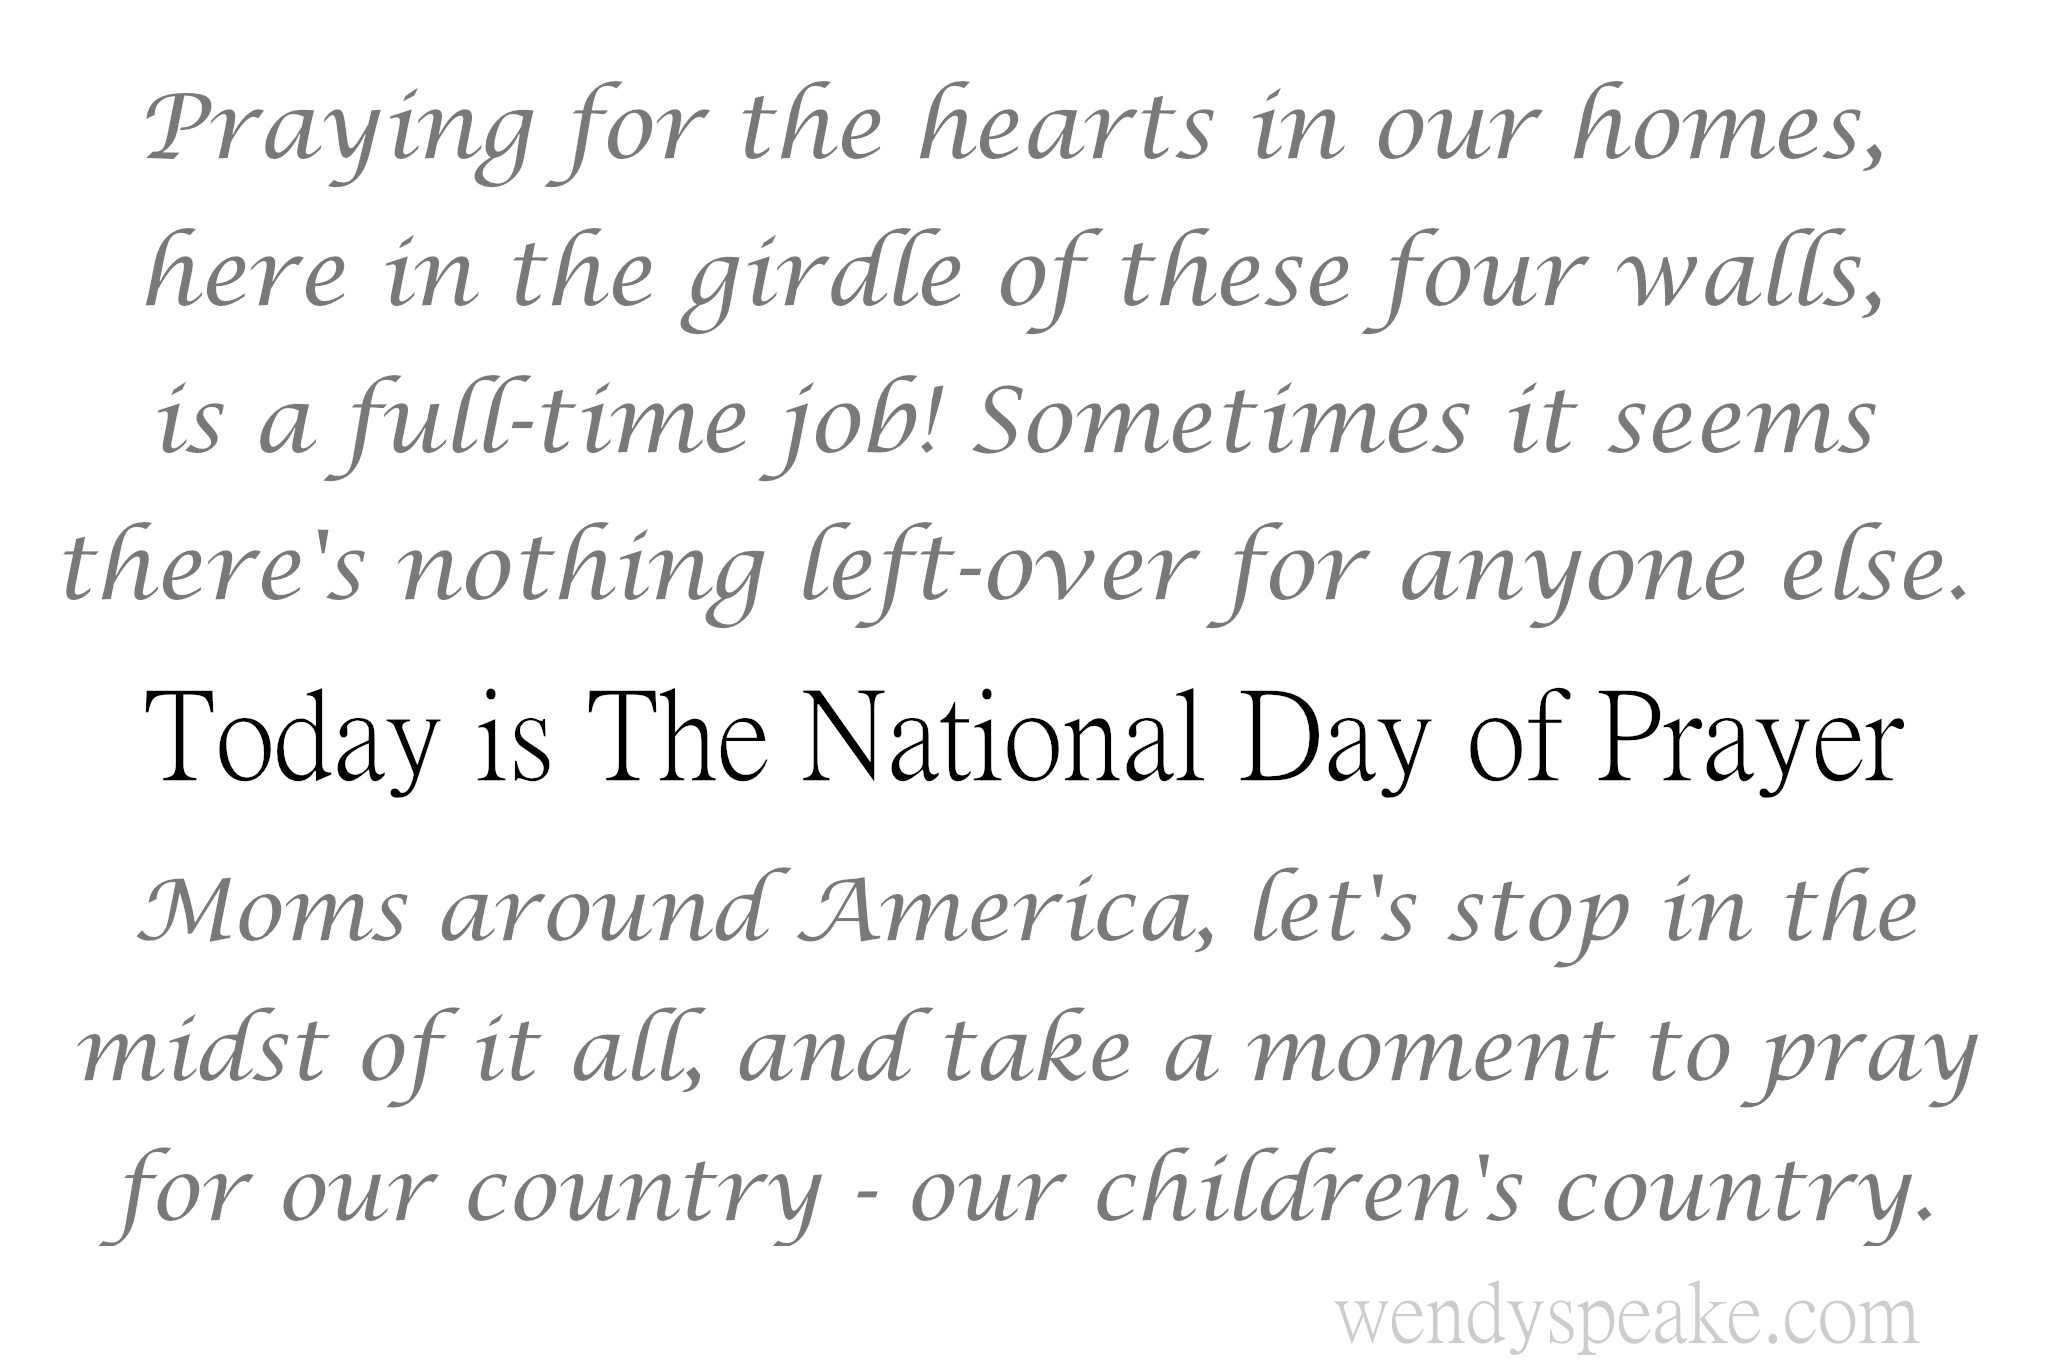 national-day-of-prayer.jpg